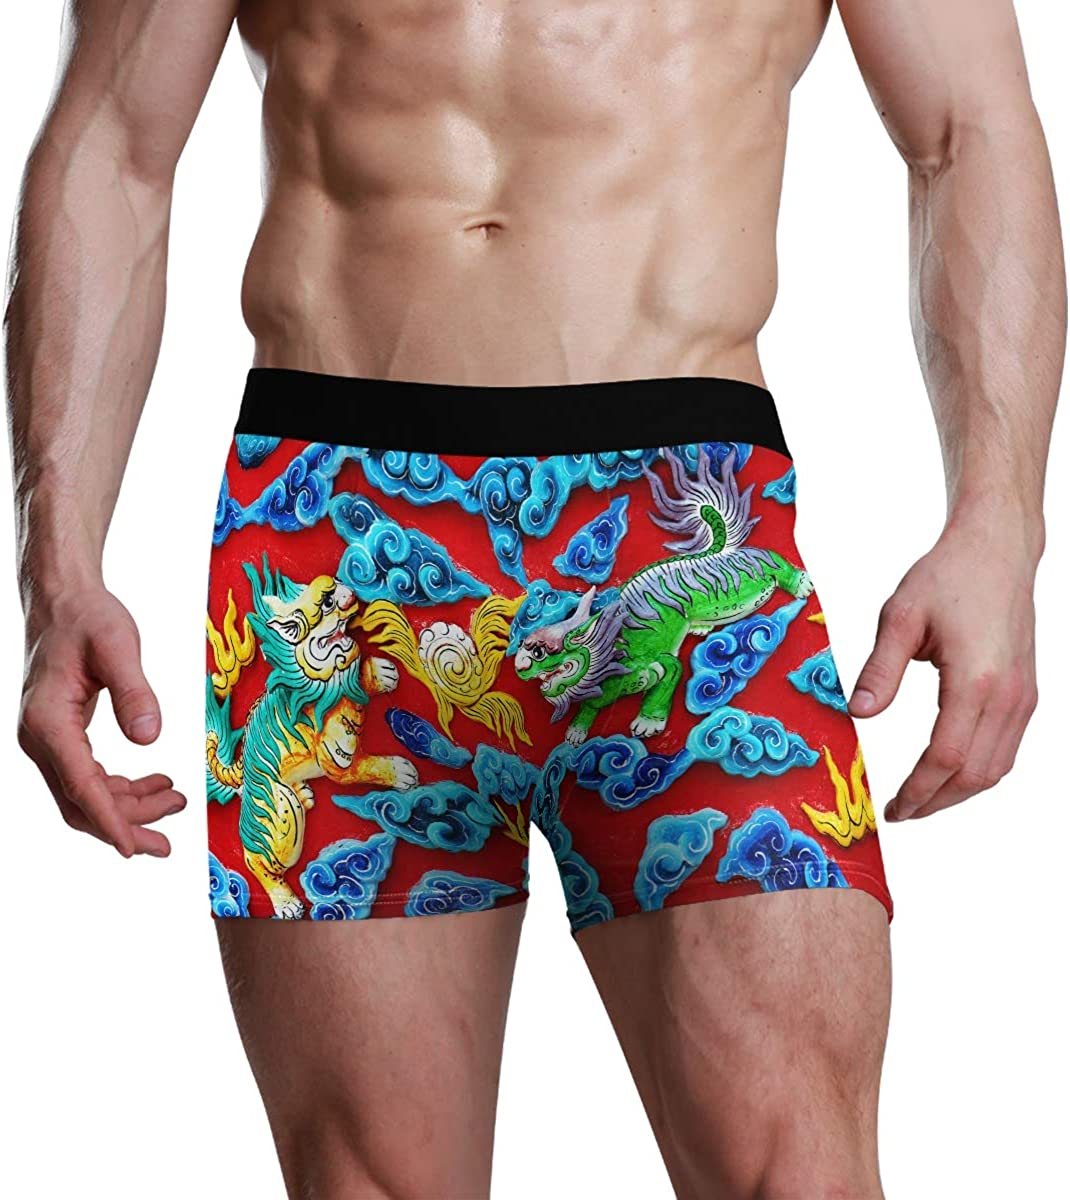 Men's Underwear Beautiful Chinese Lucky Wall Decoration Breathable Boxer Briefs Low Rise Long Leg